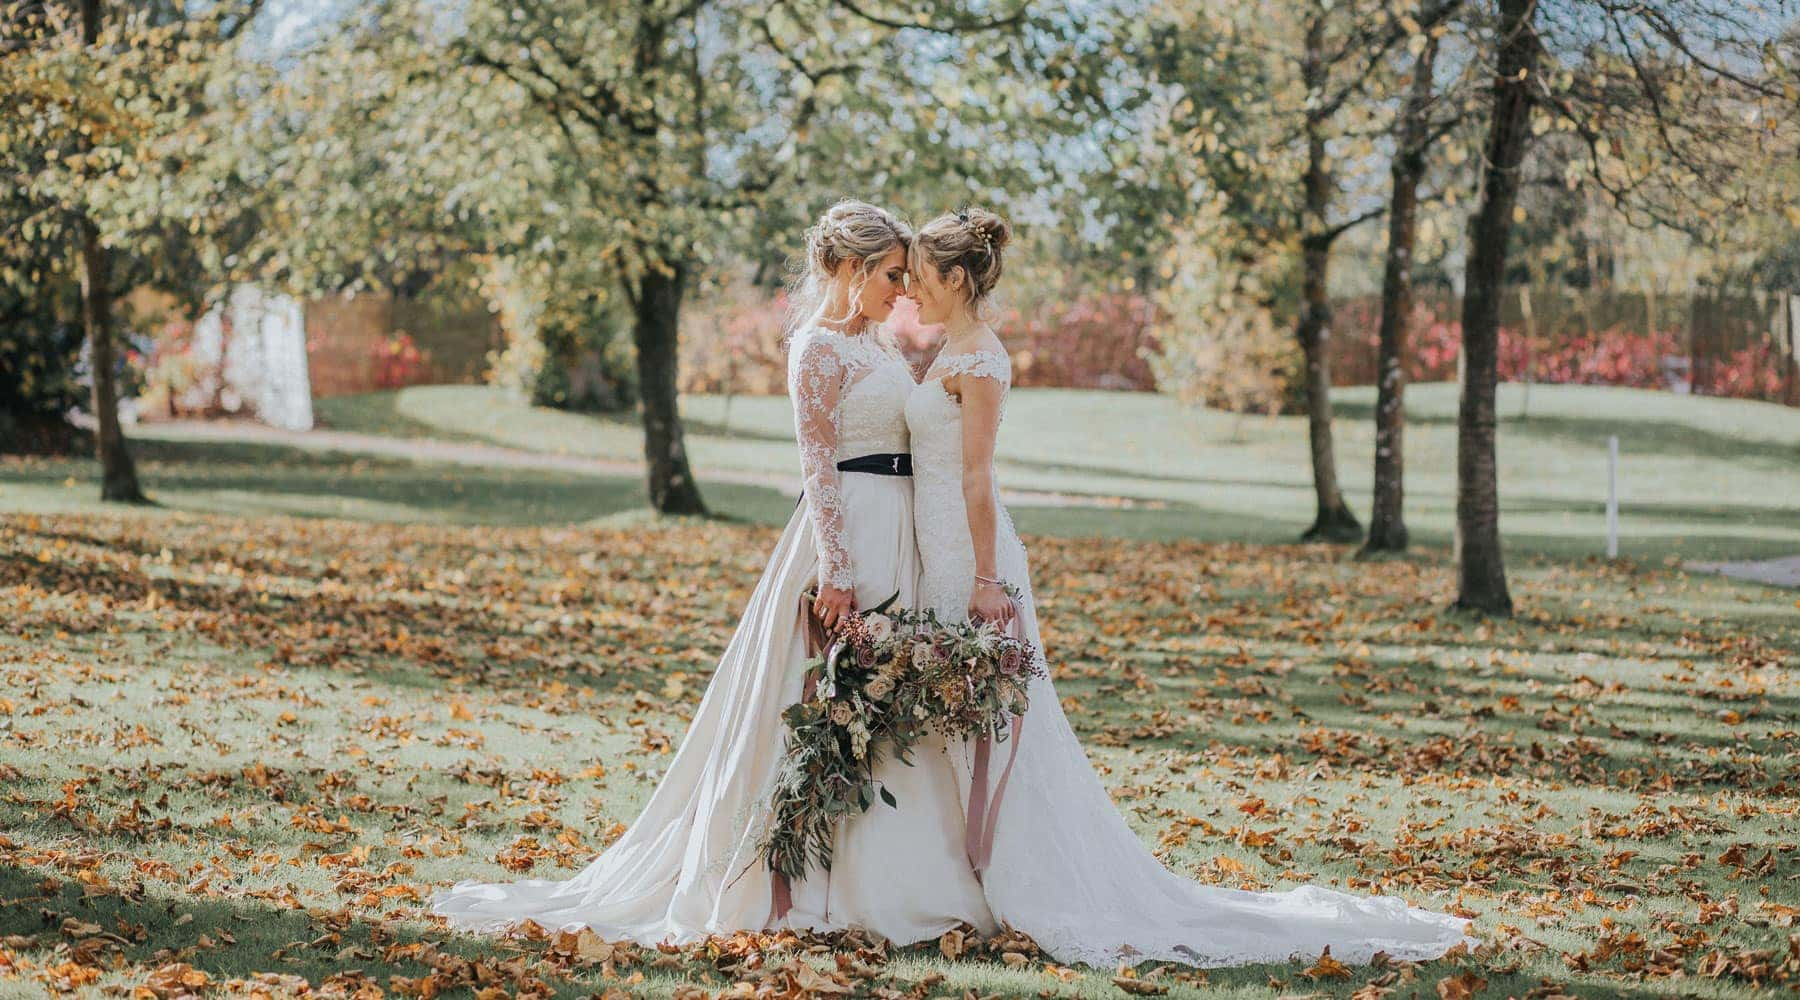 Sass & Grace Real bride stories, Clare & Kim, two brides on their wedding day, face to face in love